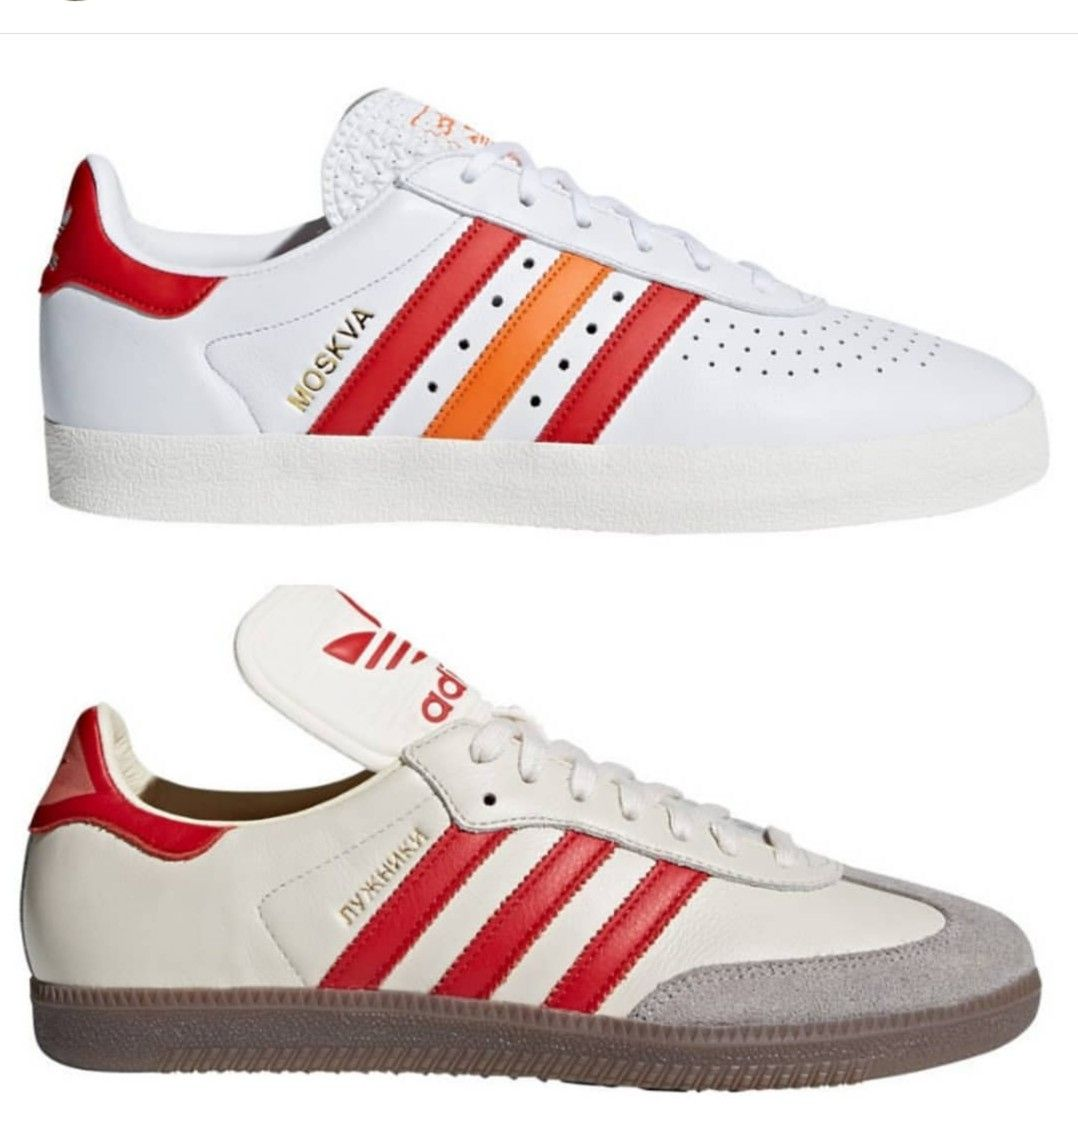 dd27b11df Adidas 350 Moskva and Samba Luzhniki due to be released soon as part of  adidas  World Cup campaign.